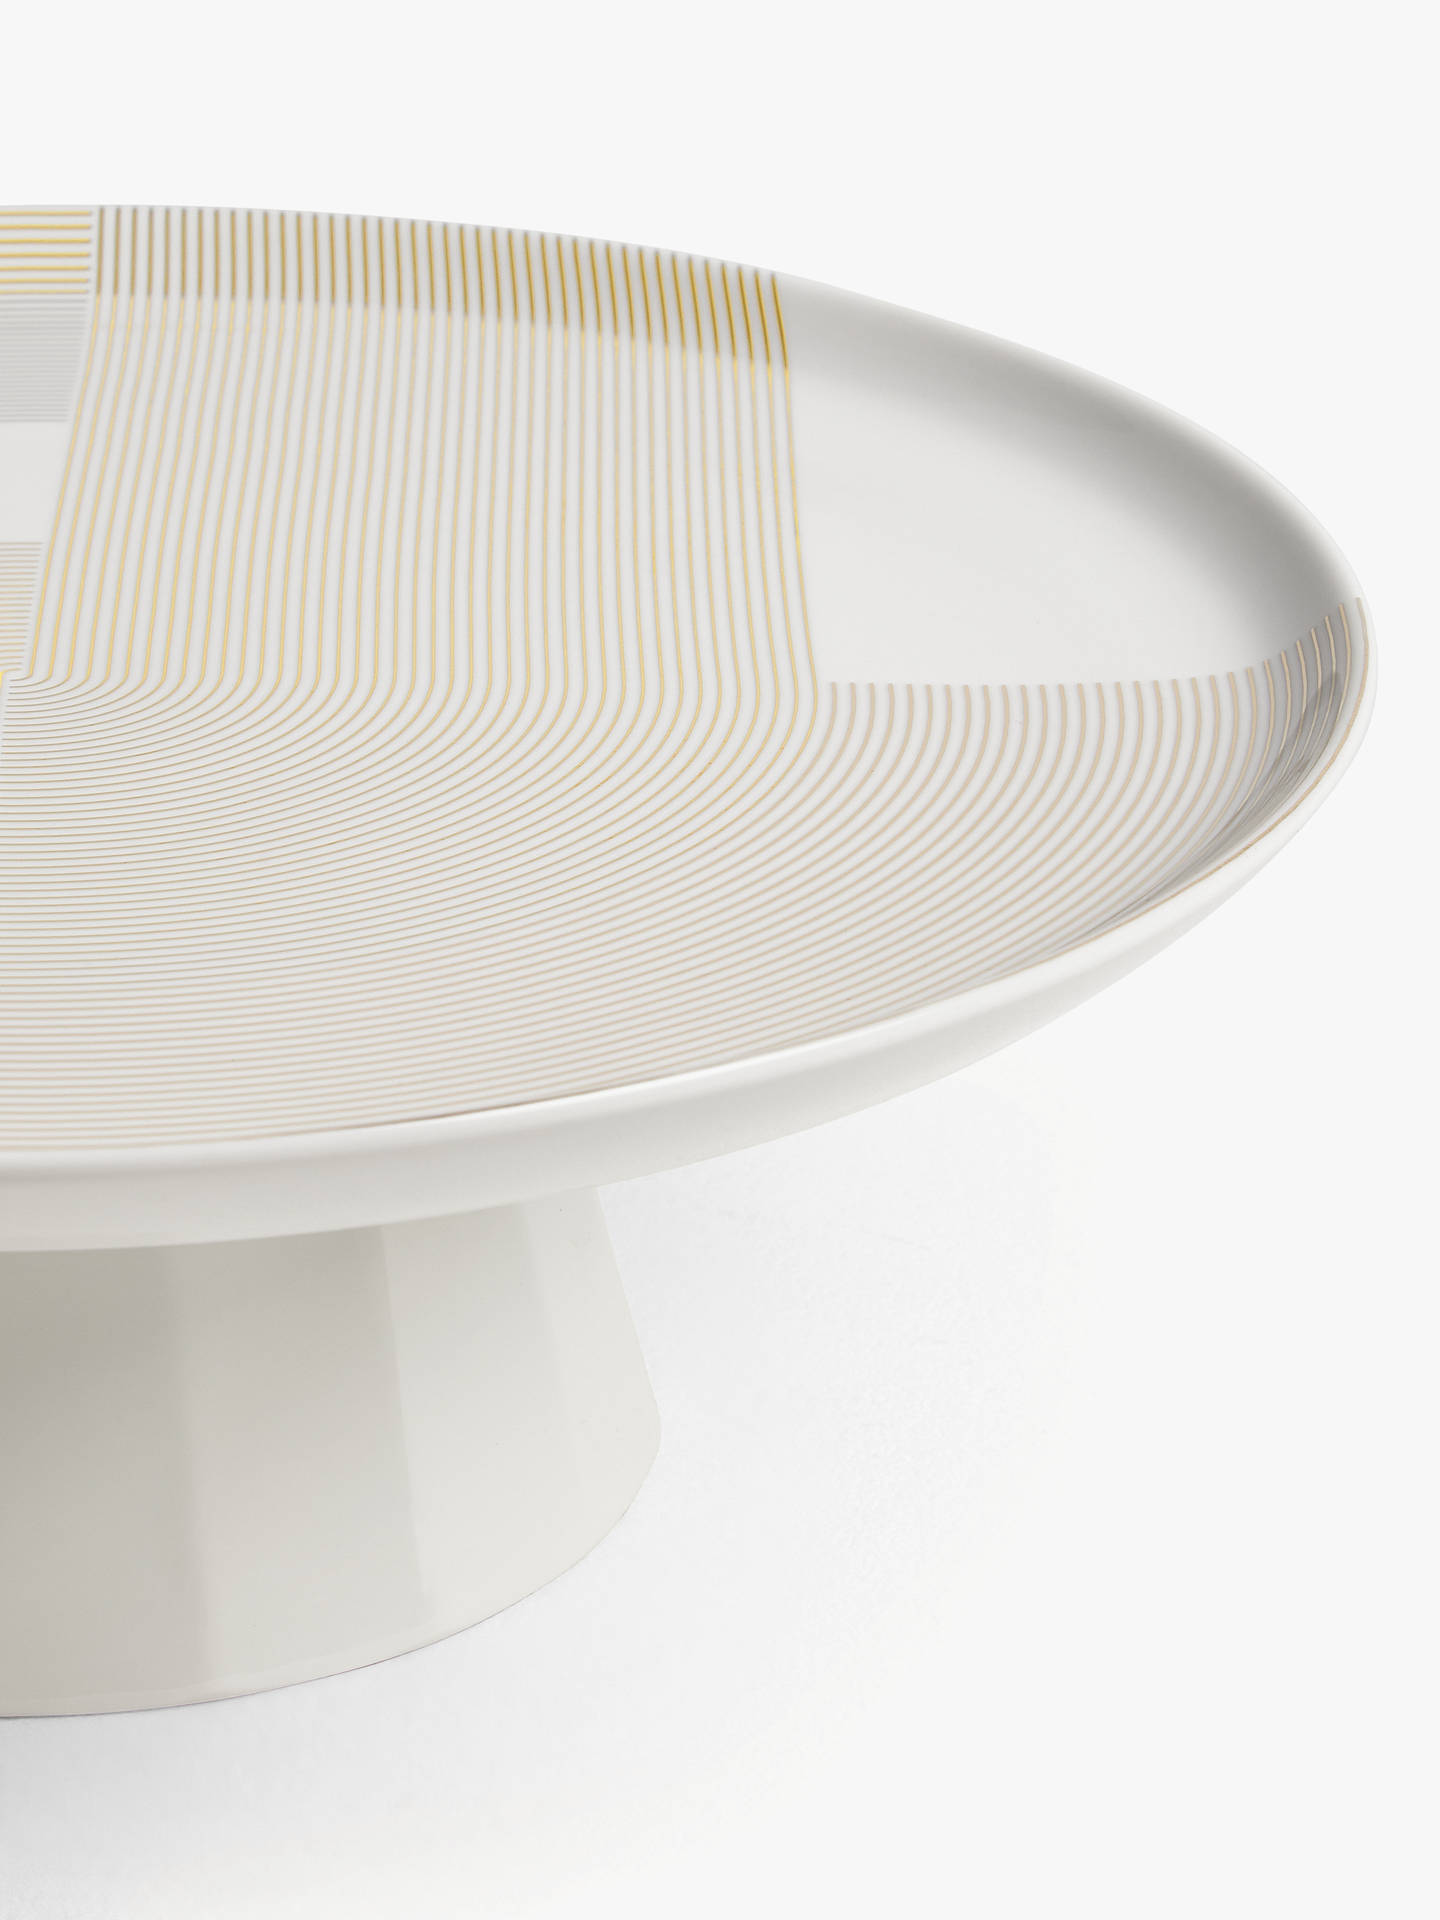 Buy John Lewis & Partners Fine China Cake Stand, 30cm, White/Gold Online at johnlewis.com